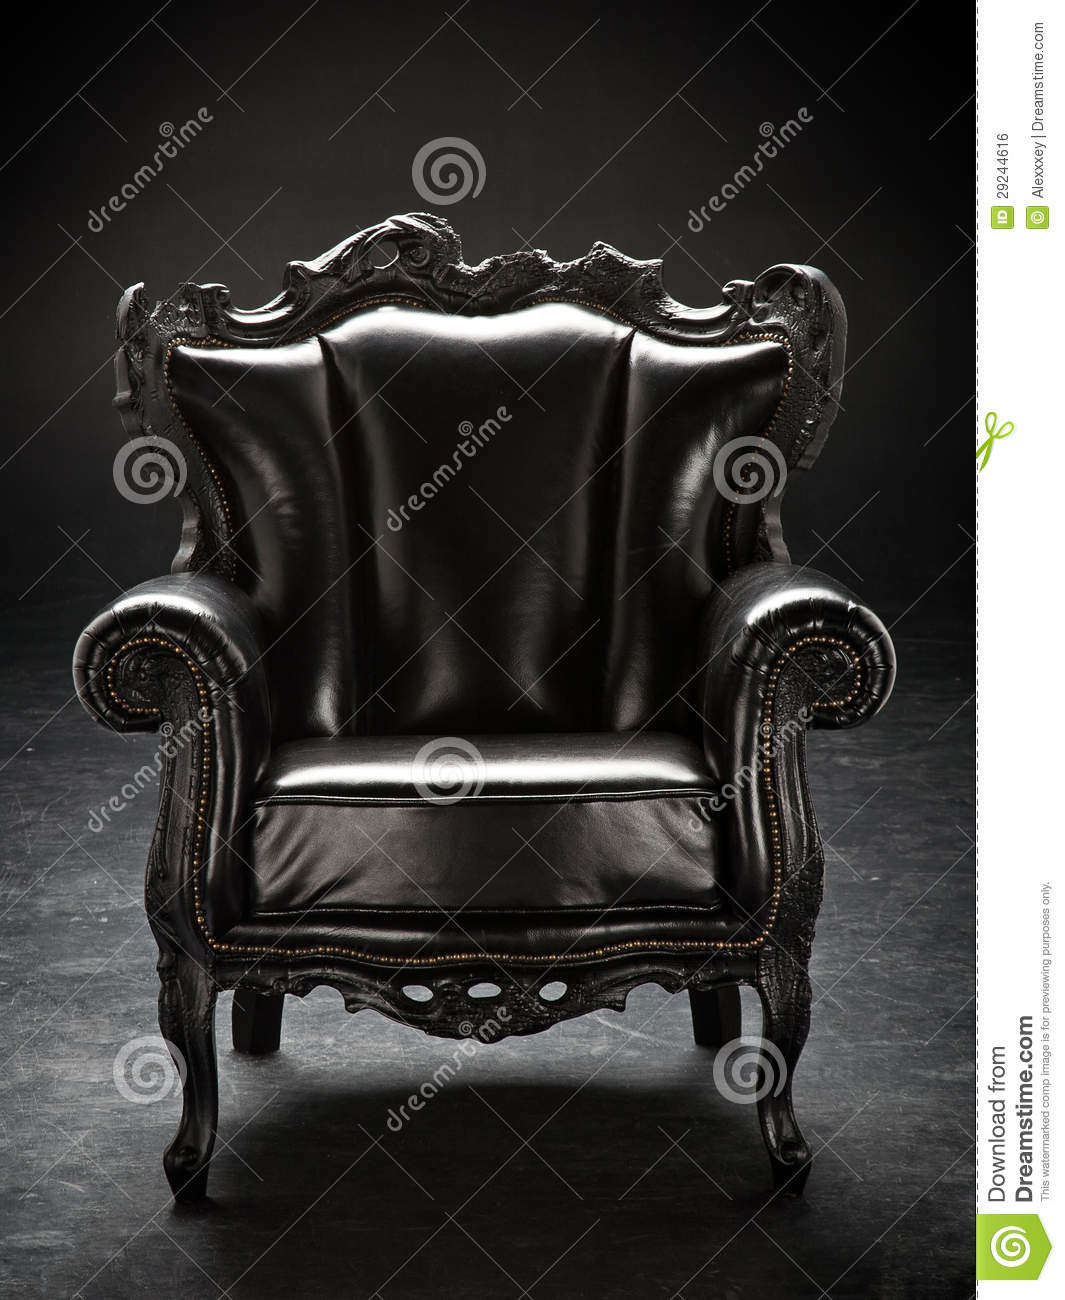 Old black chair upholstered in leather royalty free stock for Throne chair plans